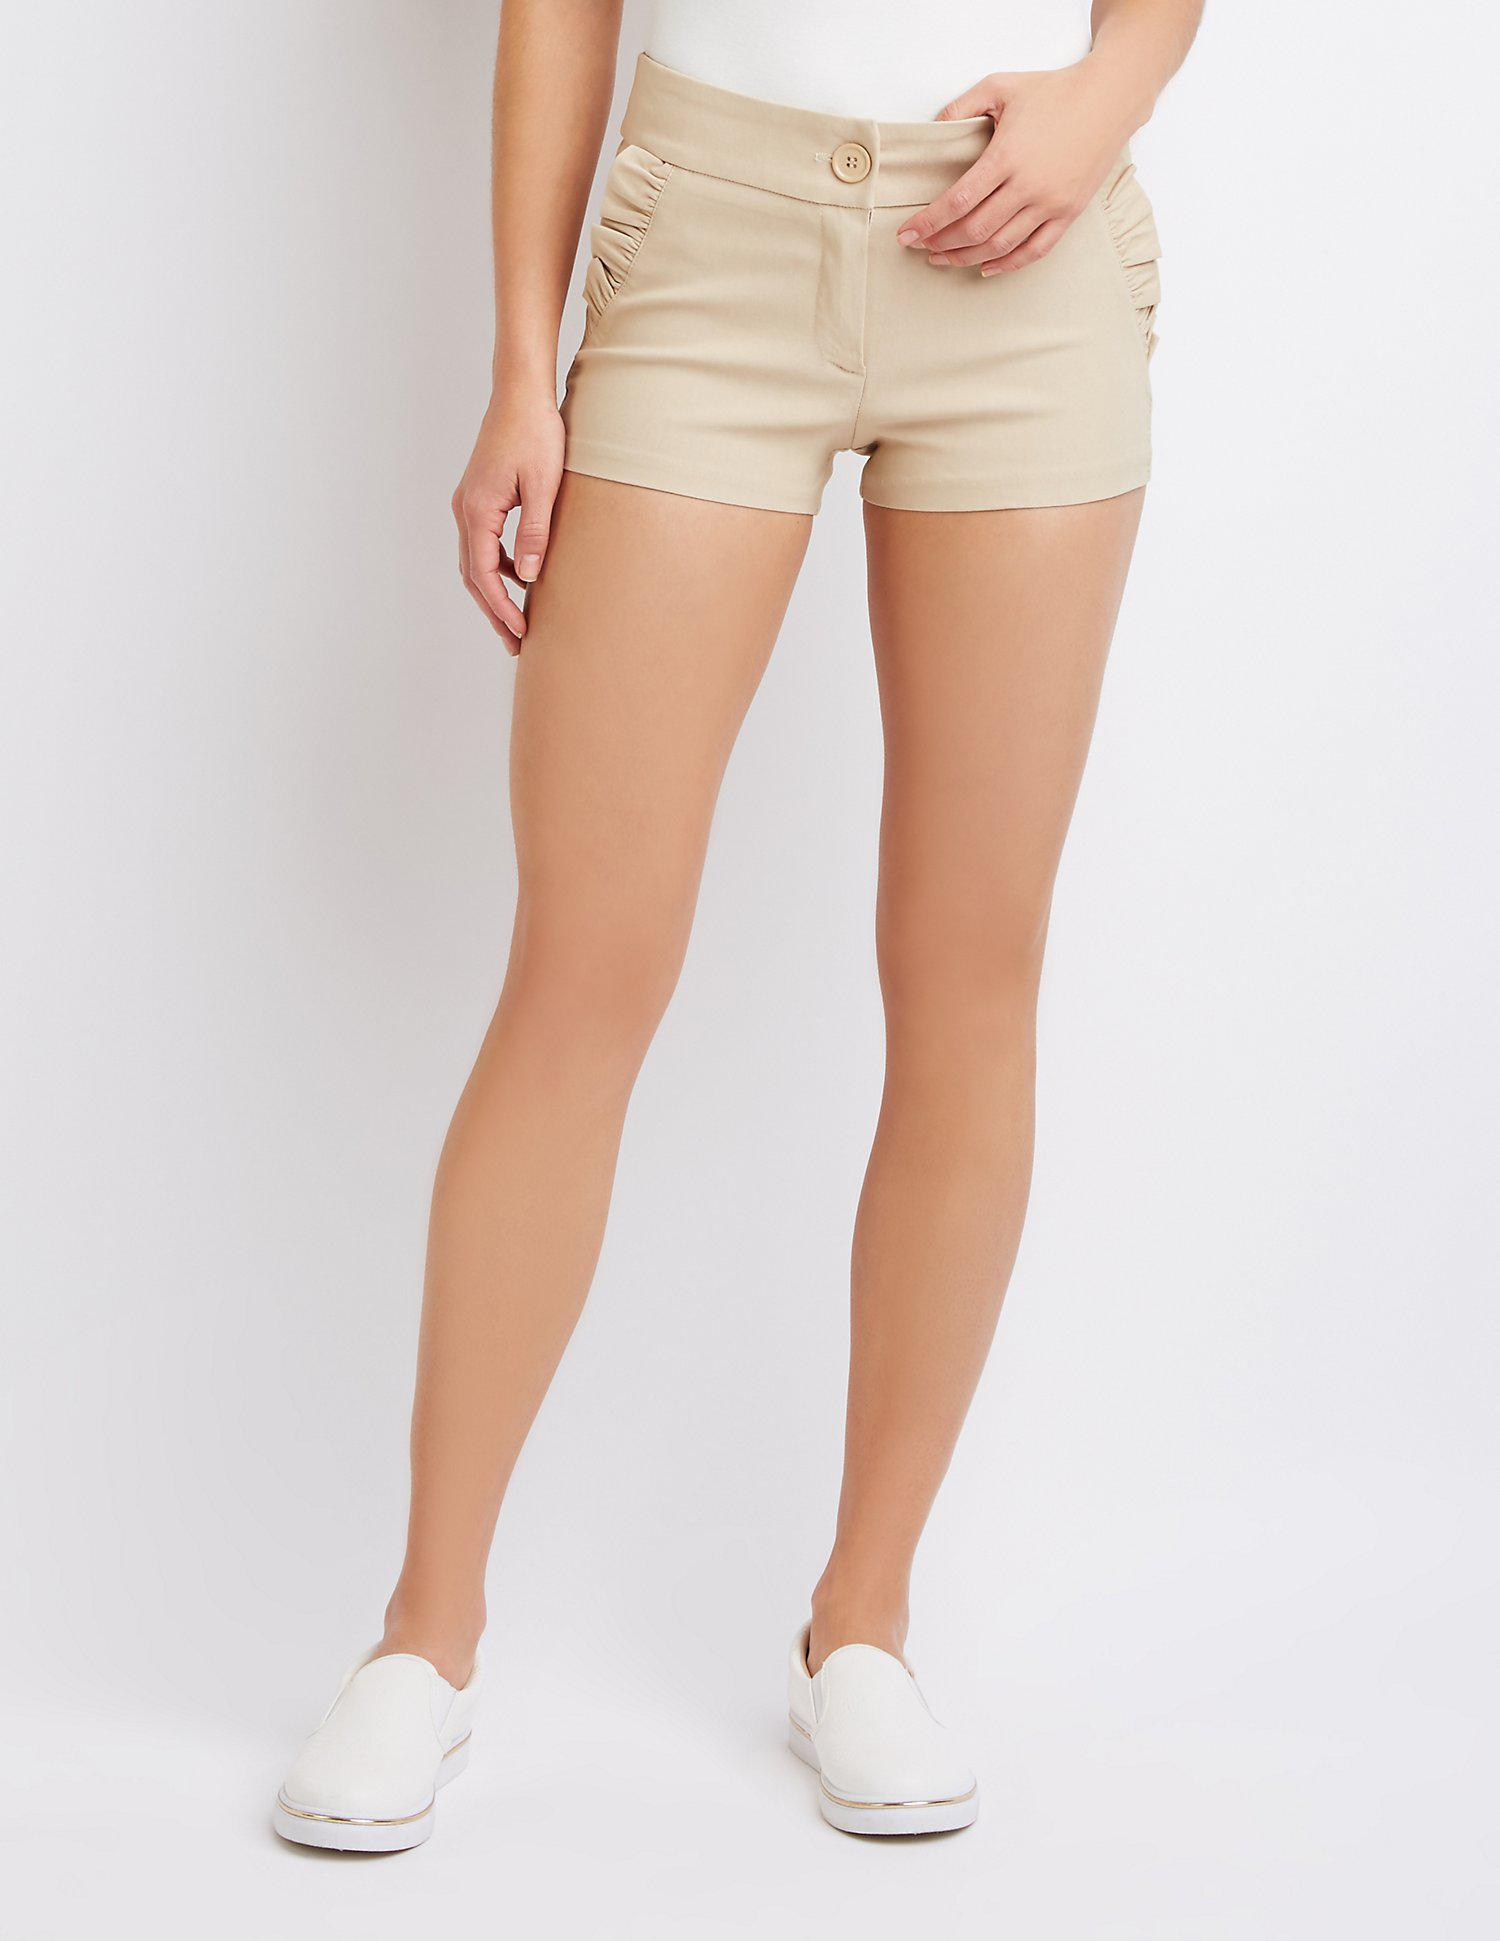 288aca2836cd6 Lyst - Charlotte Russe Ruffle-trimmed Shorts - Save 46.666666666666664%